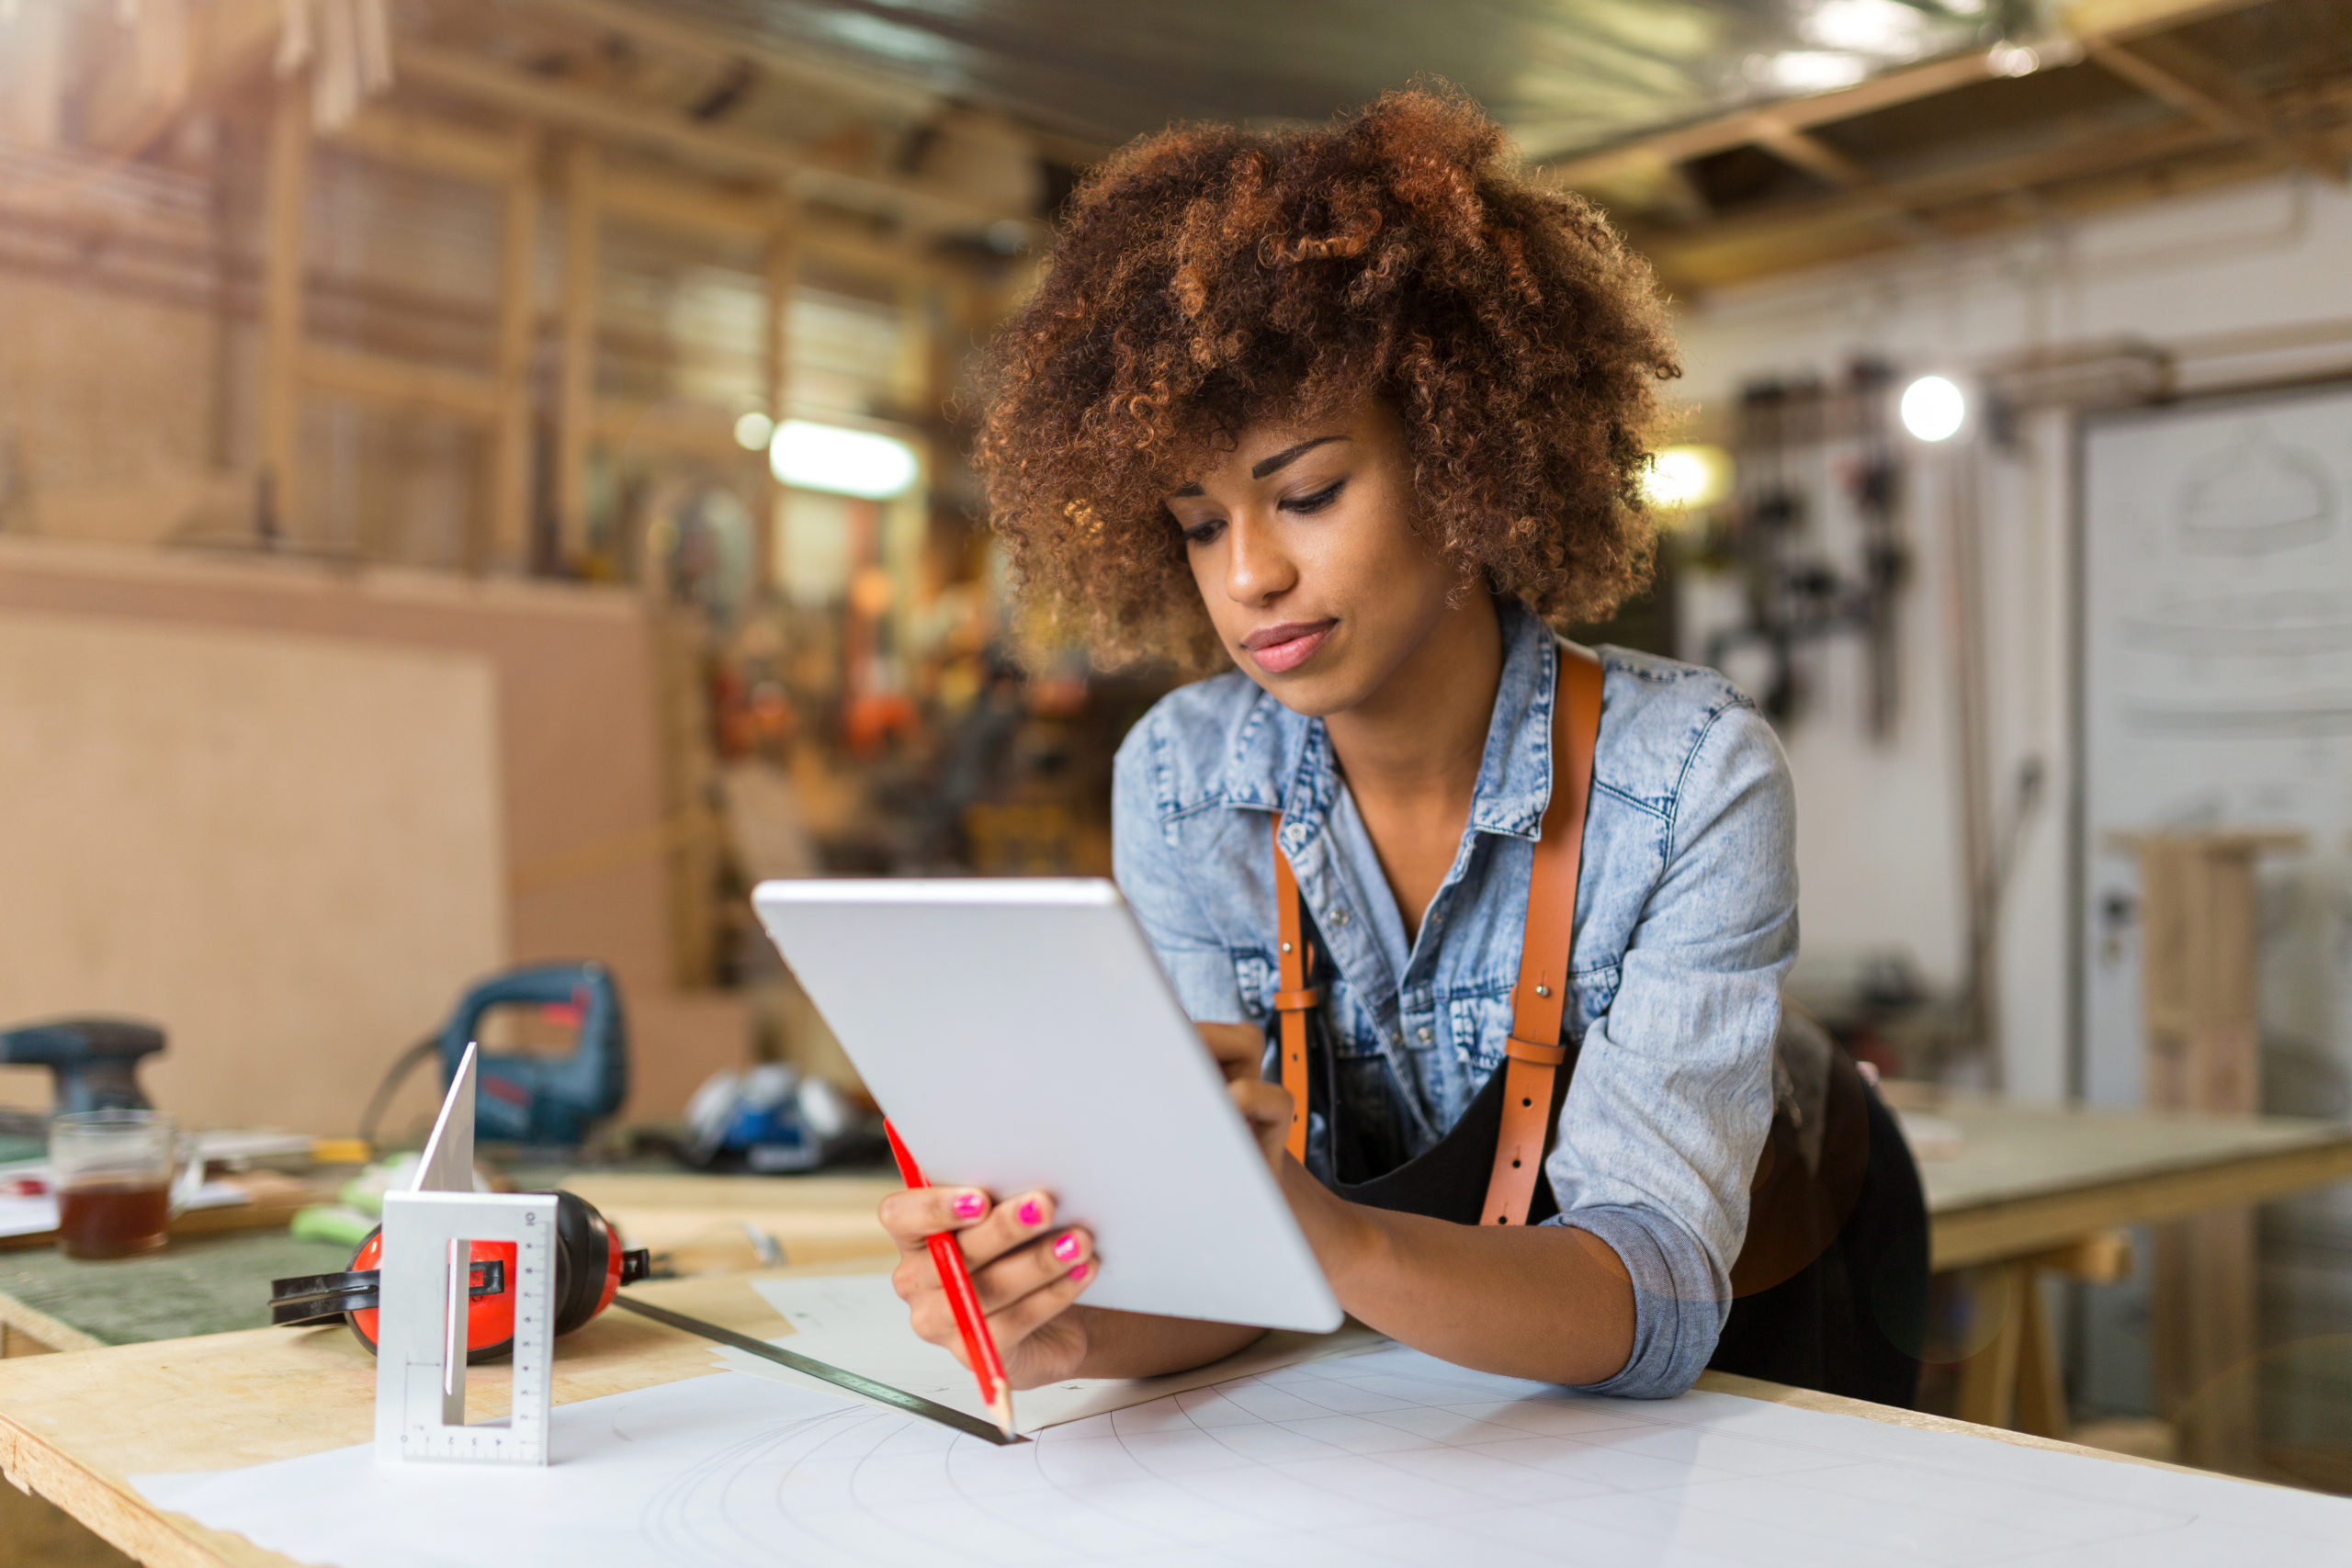 Young woman using a tablet in her workshop